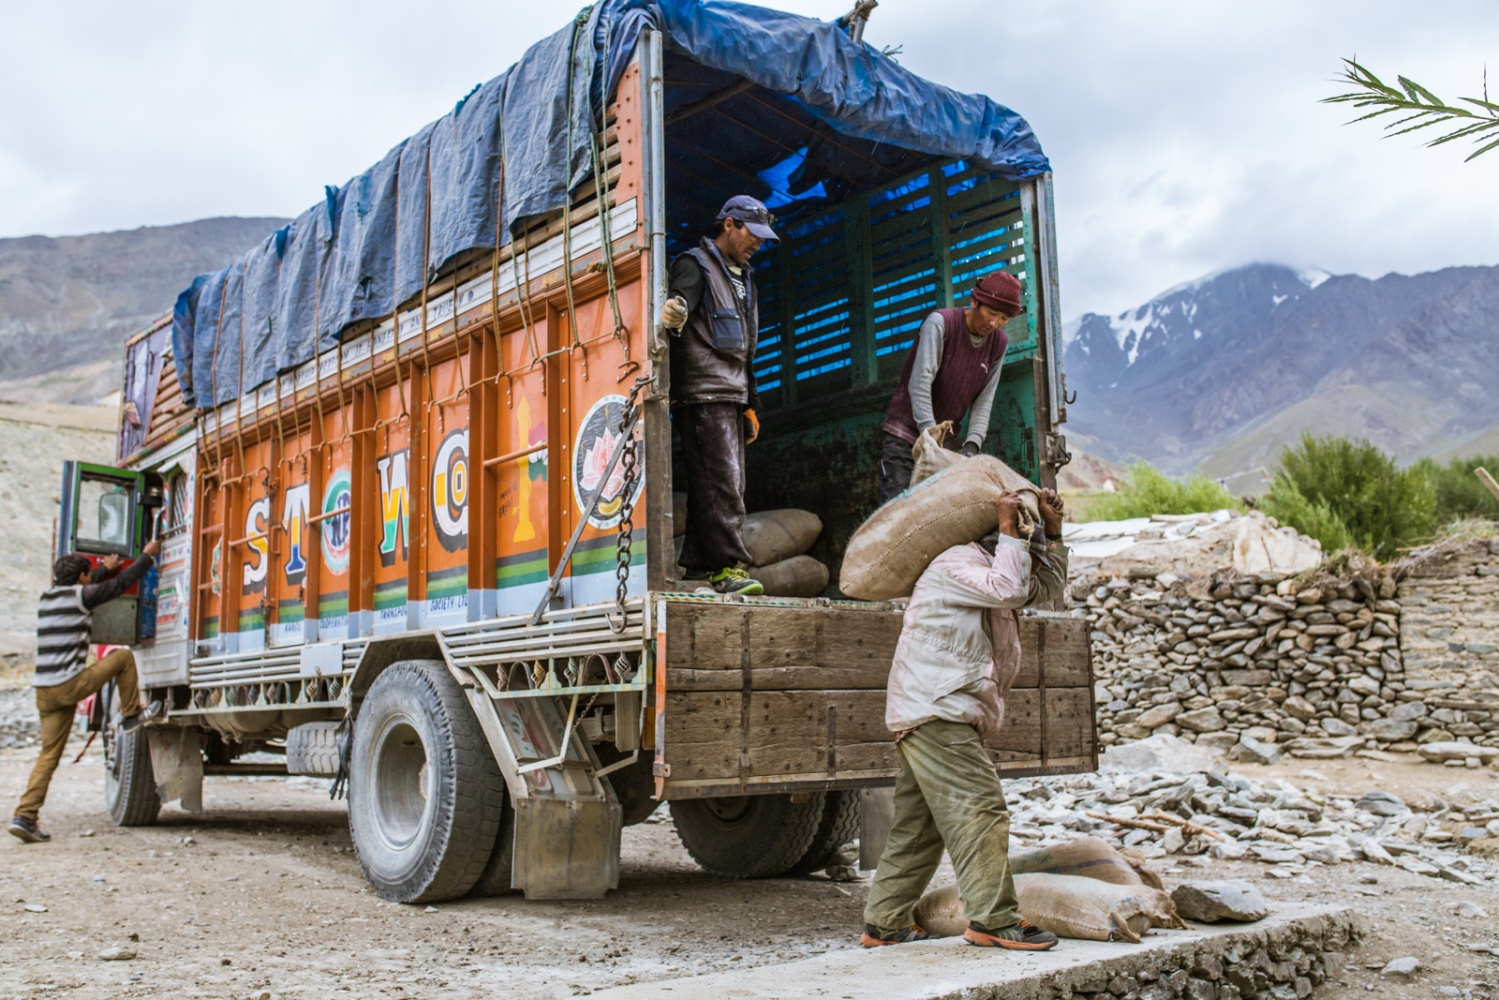 Diesel powered trucks delivering goods into remote regions of the Indian Himalaya region. Roads have changed the way people live in a significant way. They have made life easier and more accessible to the outside world for the region, as pictured. From a climate perspective roads and vehicles have been a primary source of carbon emissions throughout the world releasing vast amounts of CO2 and contributing to climate change. Climate change is affecting the Himalayan region in a myriad of ways. From water scarcity to retreating glaciers to crop failures and food shortages. It is a catch-22 situation currently, as these climate-related issues are increasingly becoming noticeable, roads and vehicles, are enabling communities to adapt to the changes by supplying them with food supplies and the like. However, these outsourced goods are only a short-term adaptation method against climate change and its effects in the region. Much of it is dependent on the fluctuating price of oil, road maintenance, and continuous good harvests from lower altitude agricultural areas. All these and more could change in a short period, which would create problems along this supply chain.